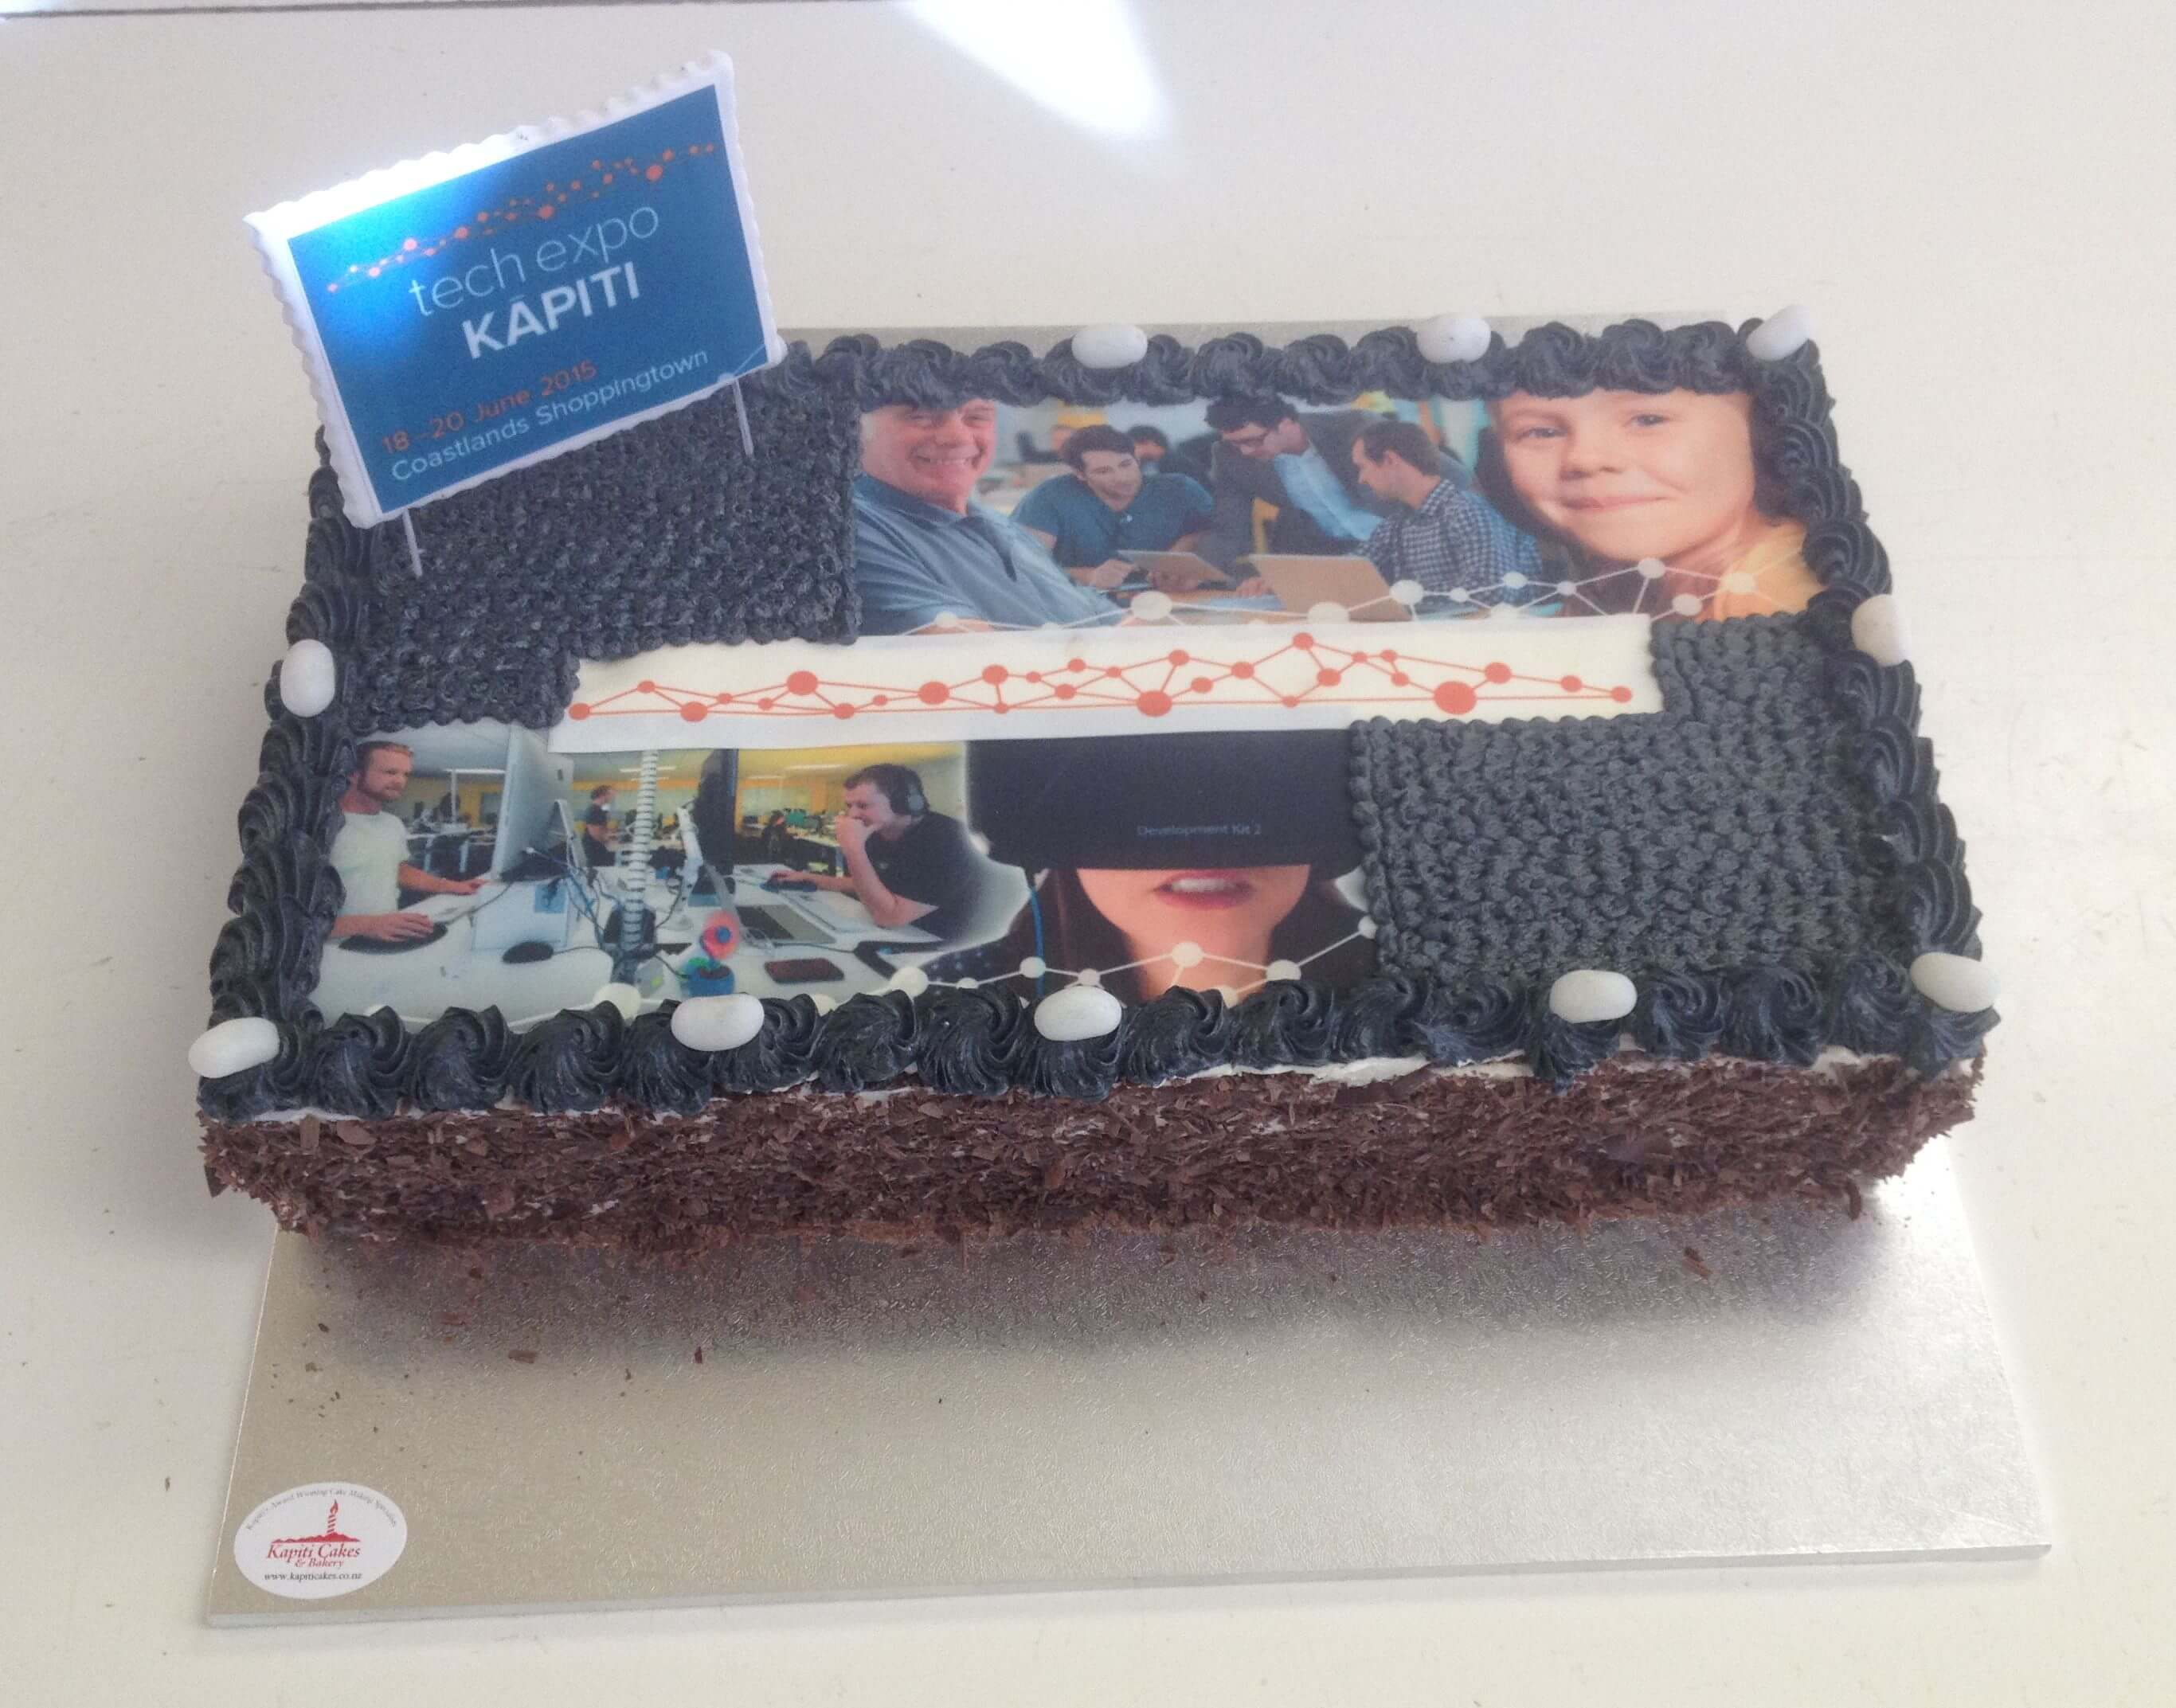 chocolate Tech expo celebrations cake